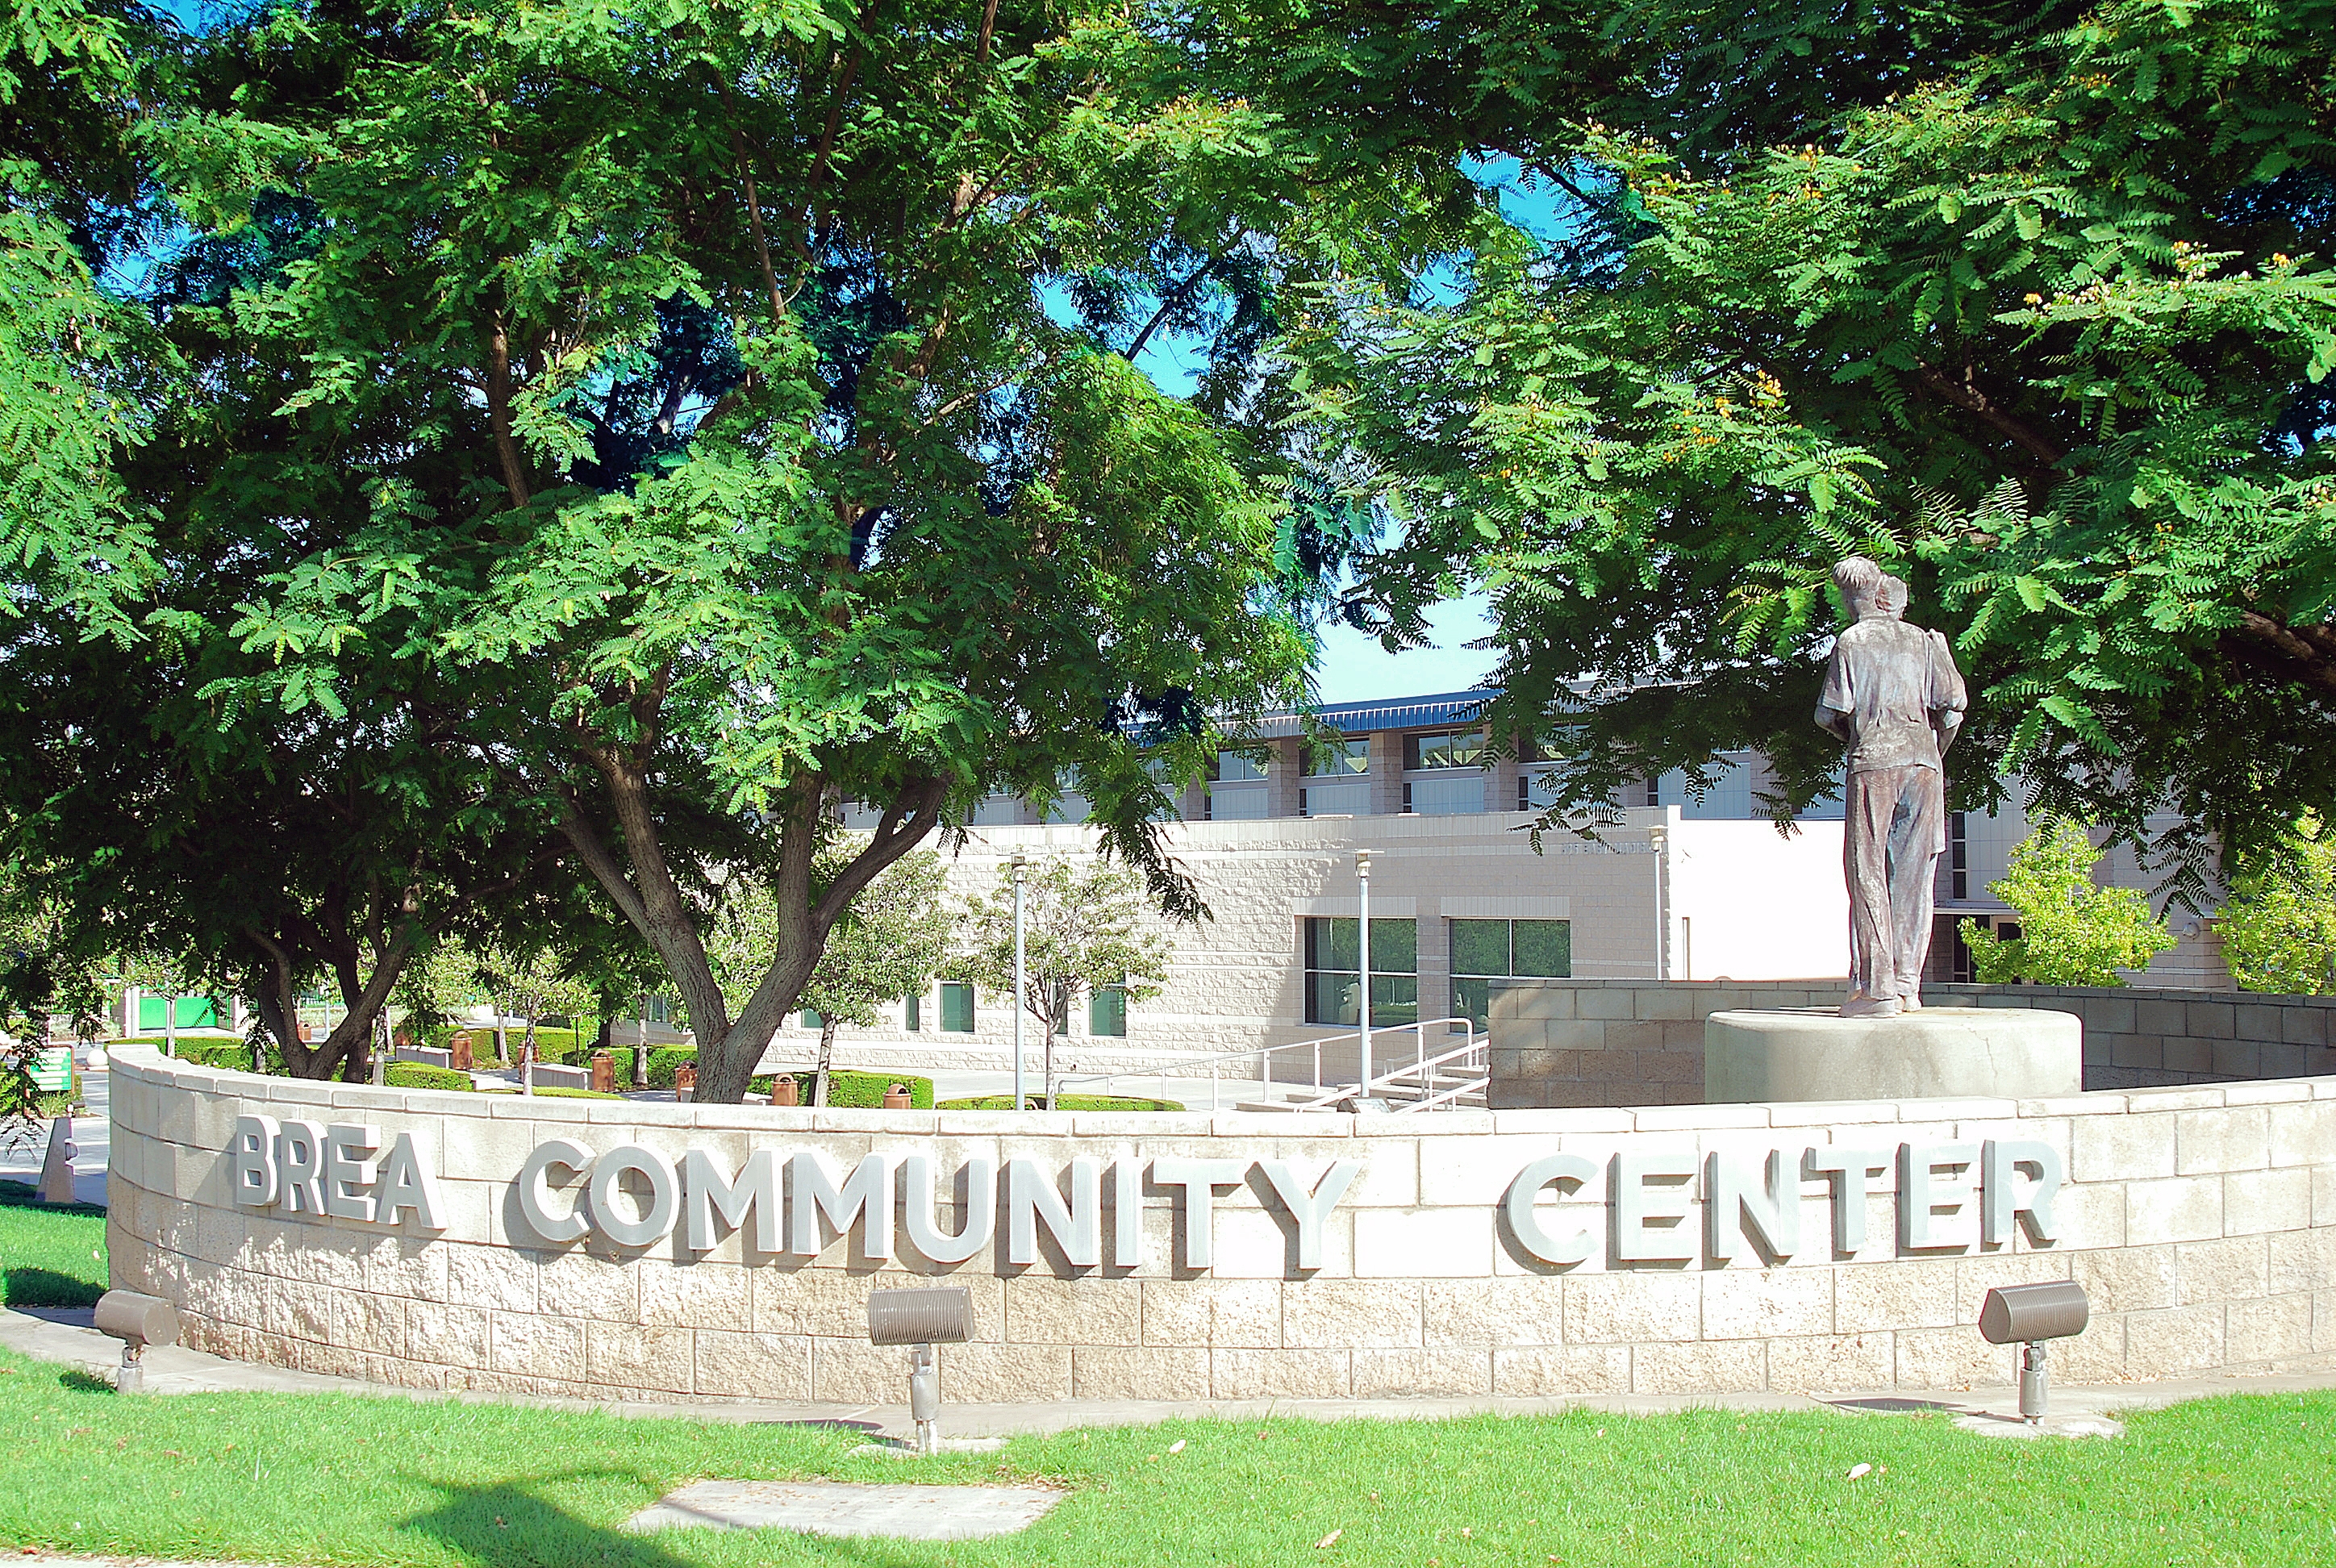 brea community center exterior